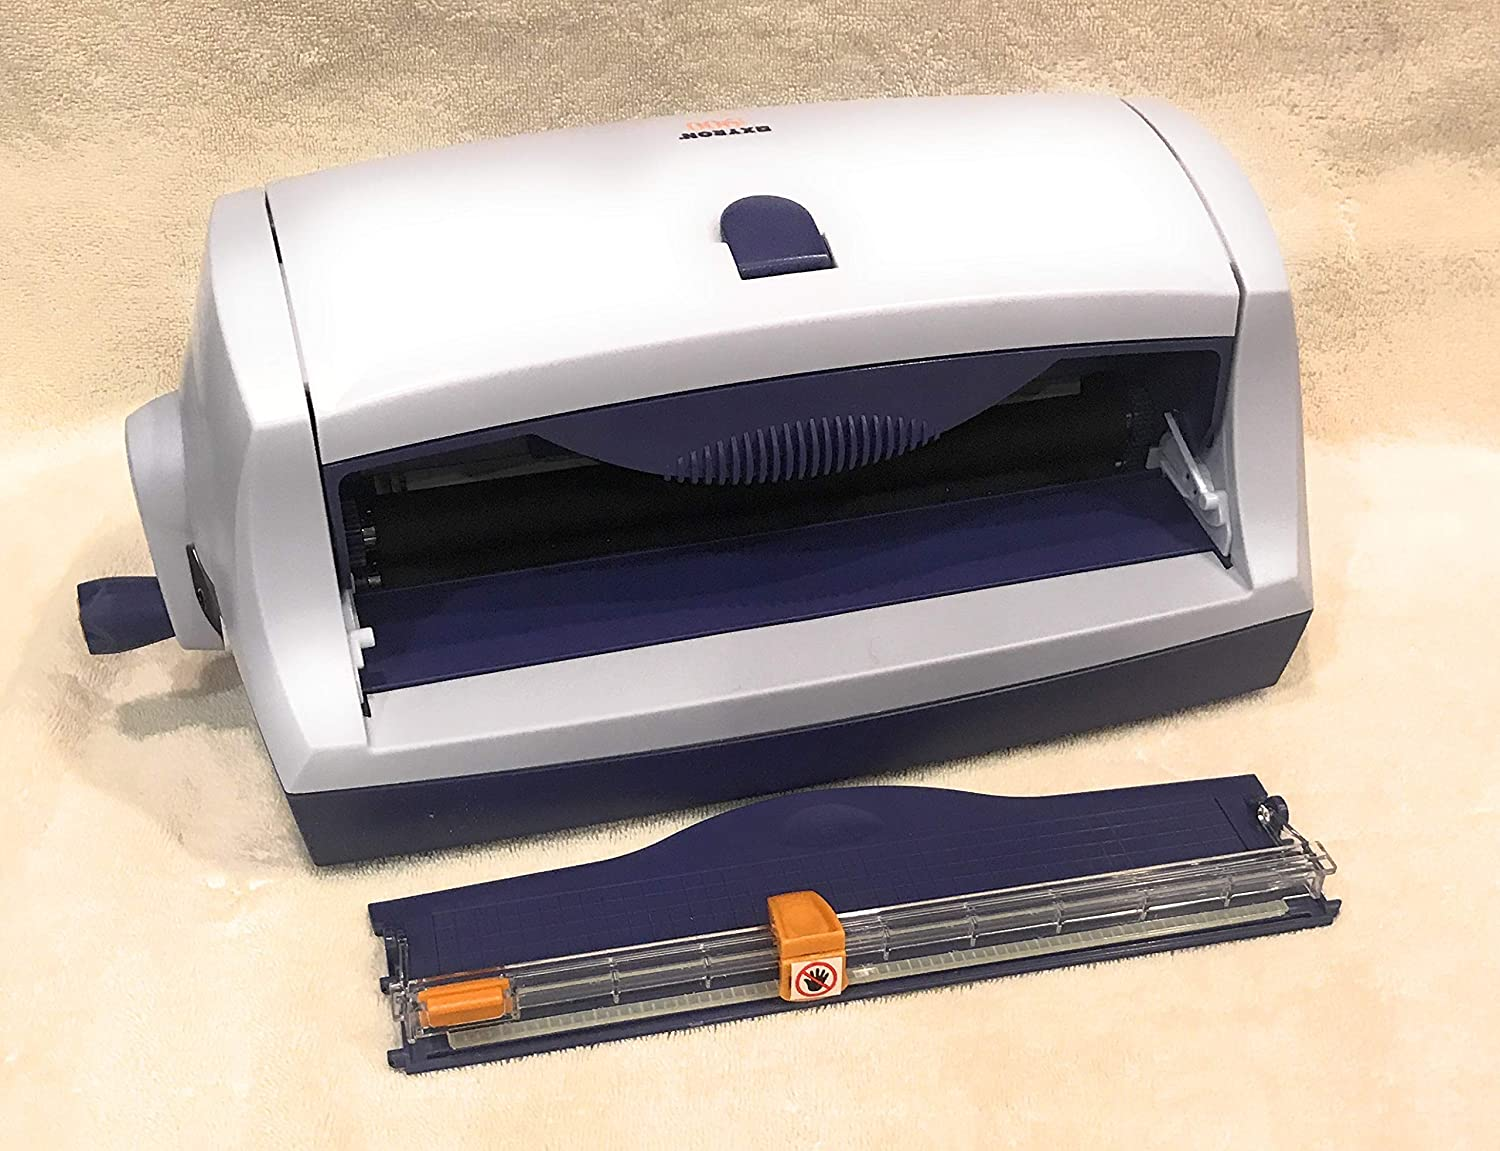 Xyron 900 Sticker/Laminate/Magnet/Label Machine 1 pcs sku# 633674MA